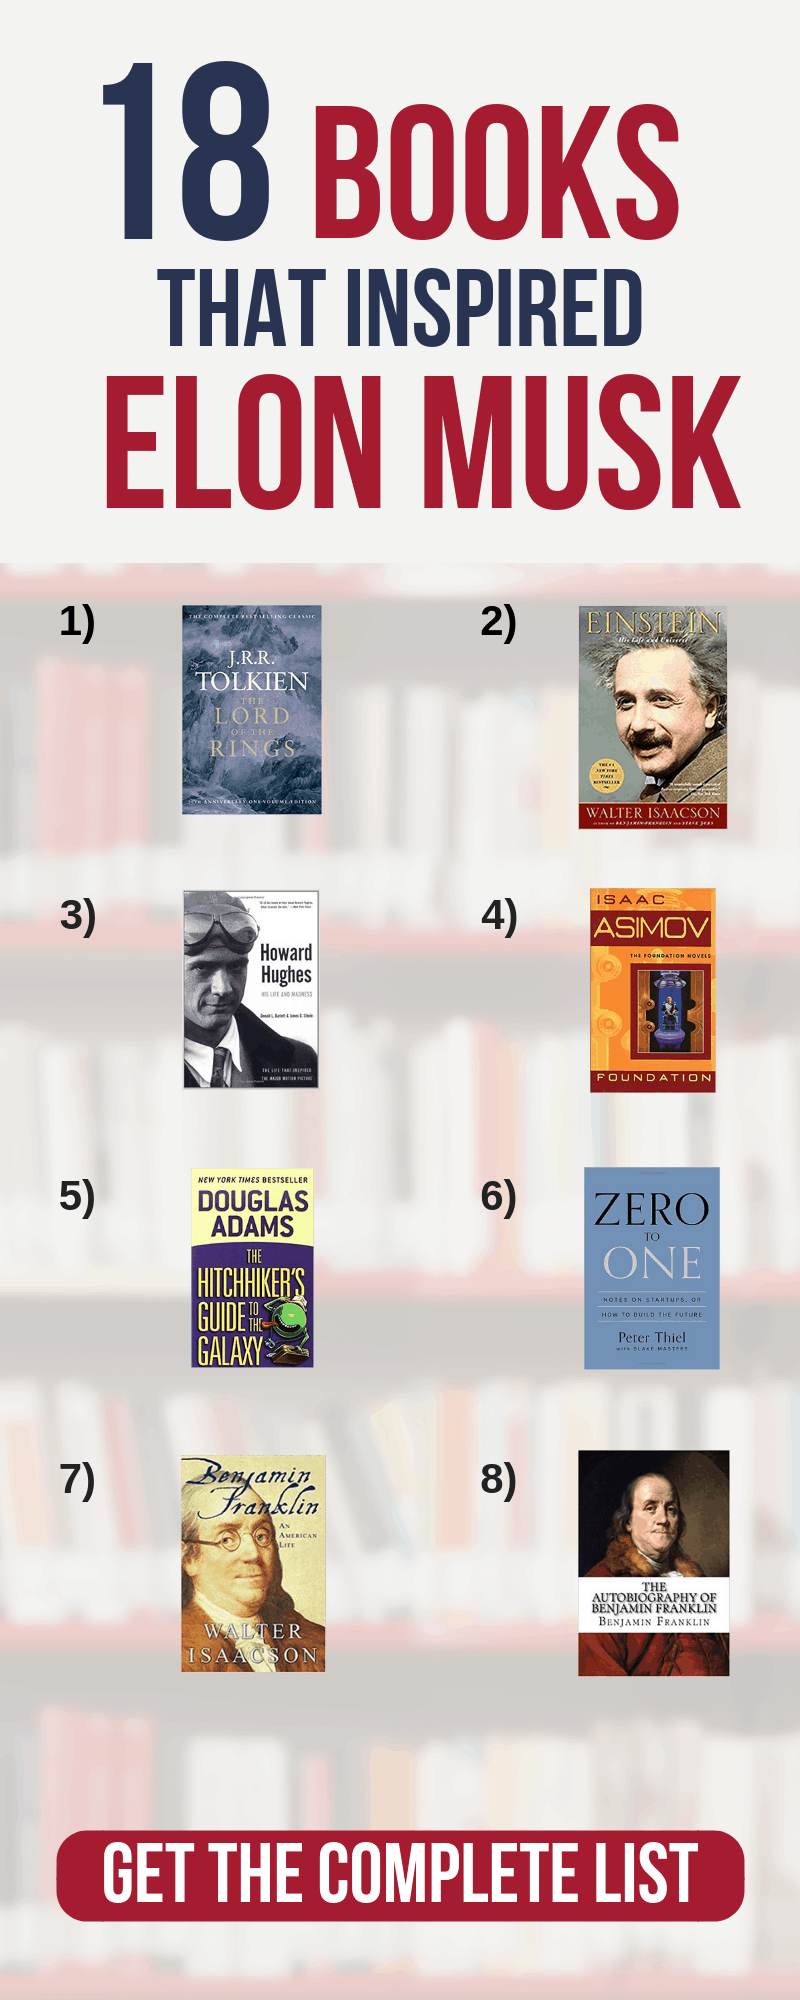 Elon Musk's Favorite Books: 18 Recommended BooksDiscover the 18 books he recommends, that shaped his thinking as a young adult to billionaire.books for entrepreneurs startups | best business books to read | business reading list#thewaystowealth #busienss #tesla #elonmusk #reading #readinglist